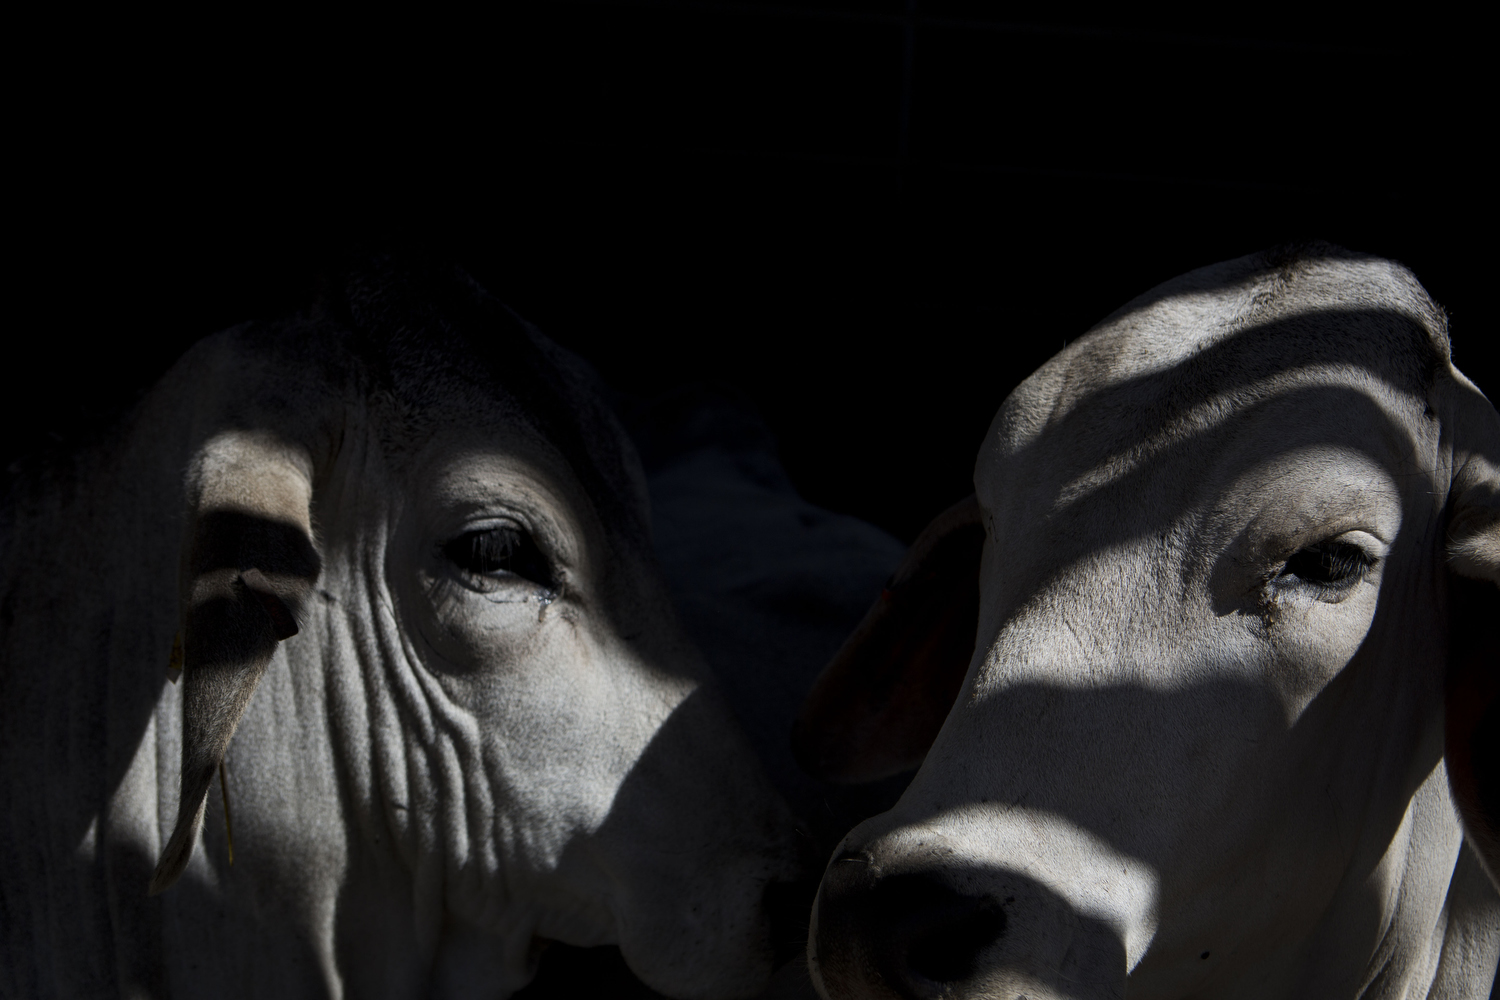 Brahman cattle lay down together in a barn at the San Antonio Stock Show and Rodeo in San Antonio, TX on Wednesday, February 18, 2015.